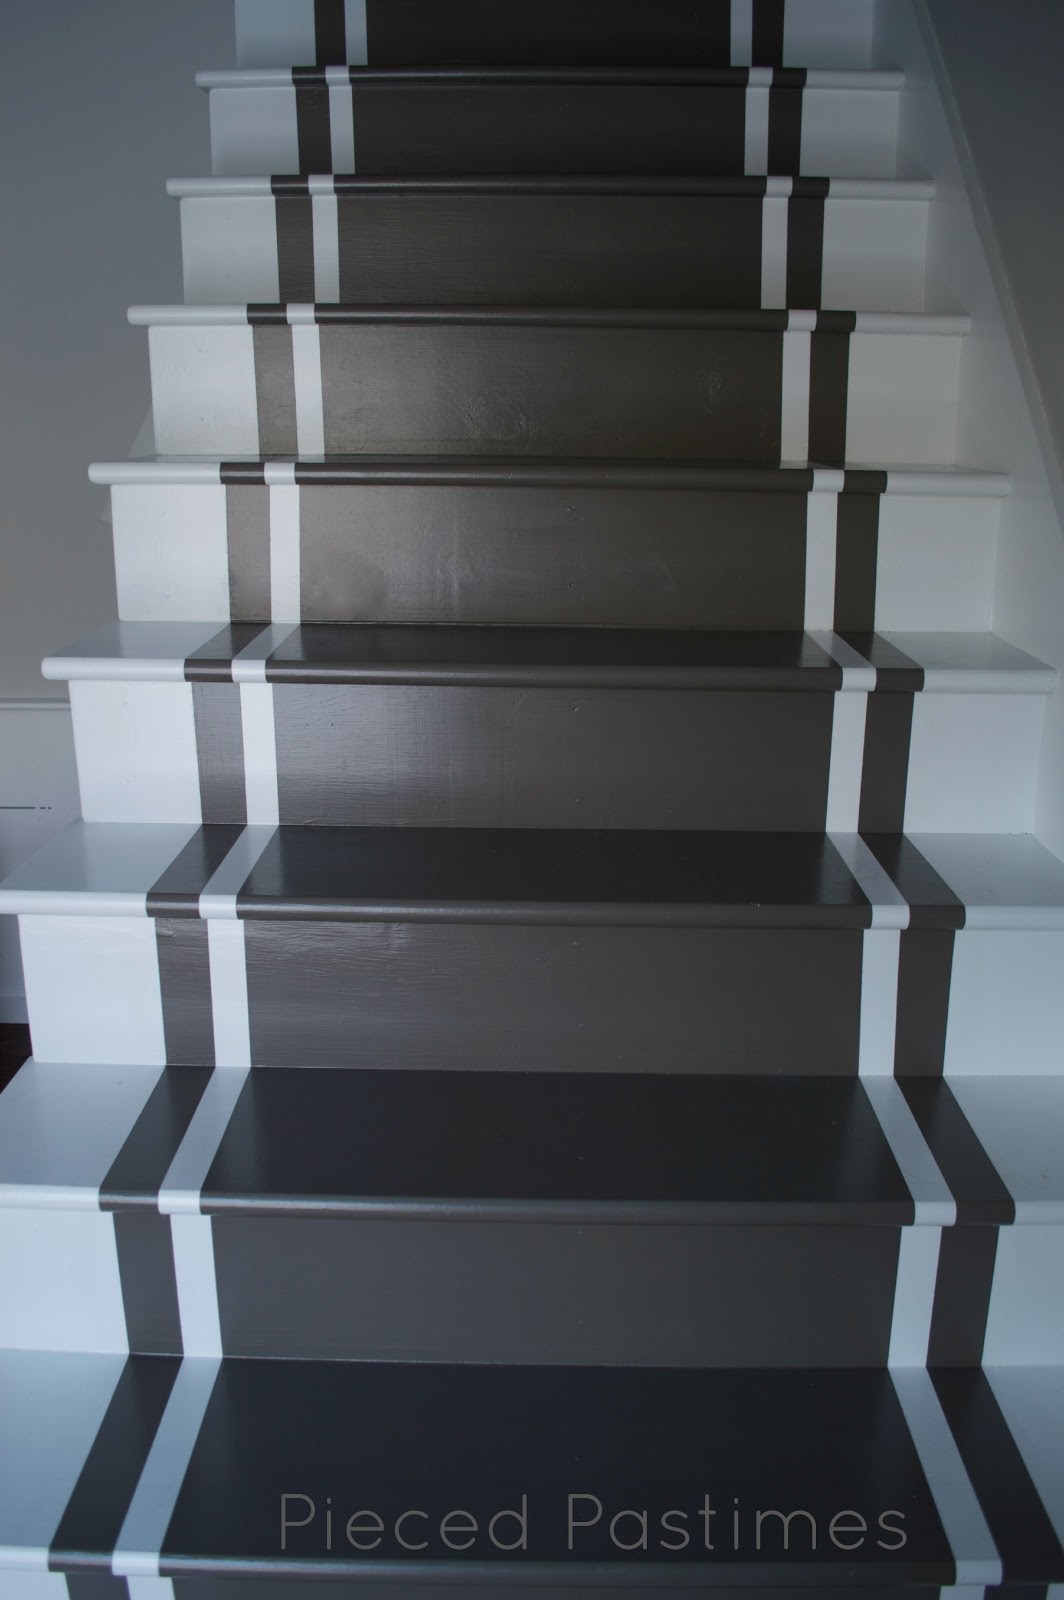 Best Paint For Stairs Pieced Pastimes Diy Painted Stair Runner